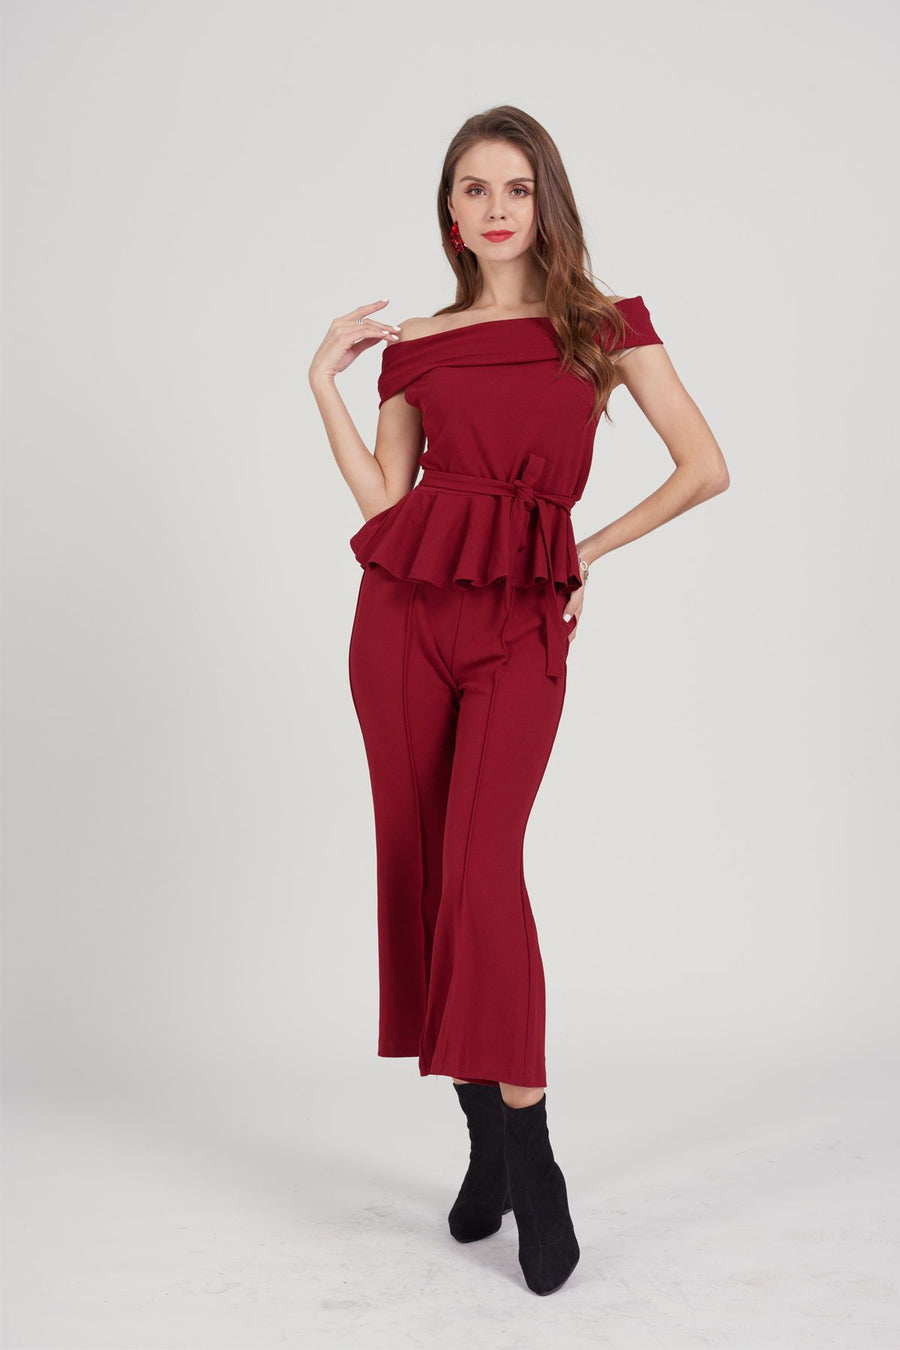 Mantra Pakistan Red Peplum Suit | DRESS